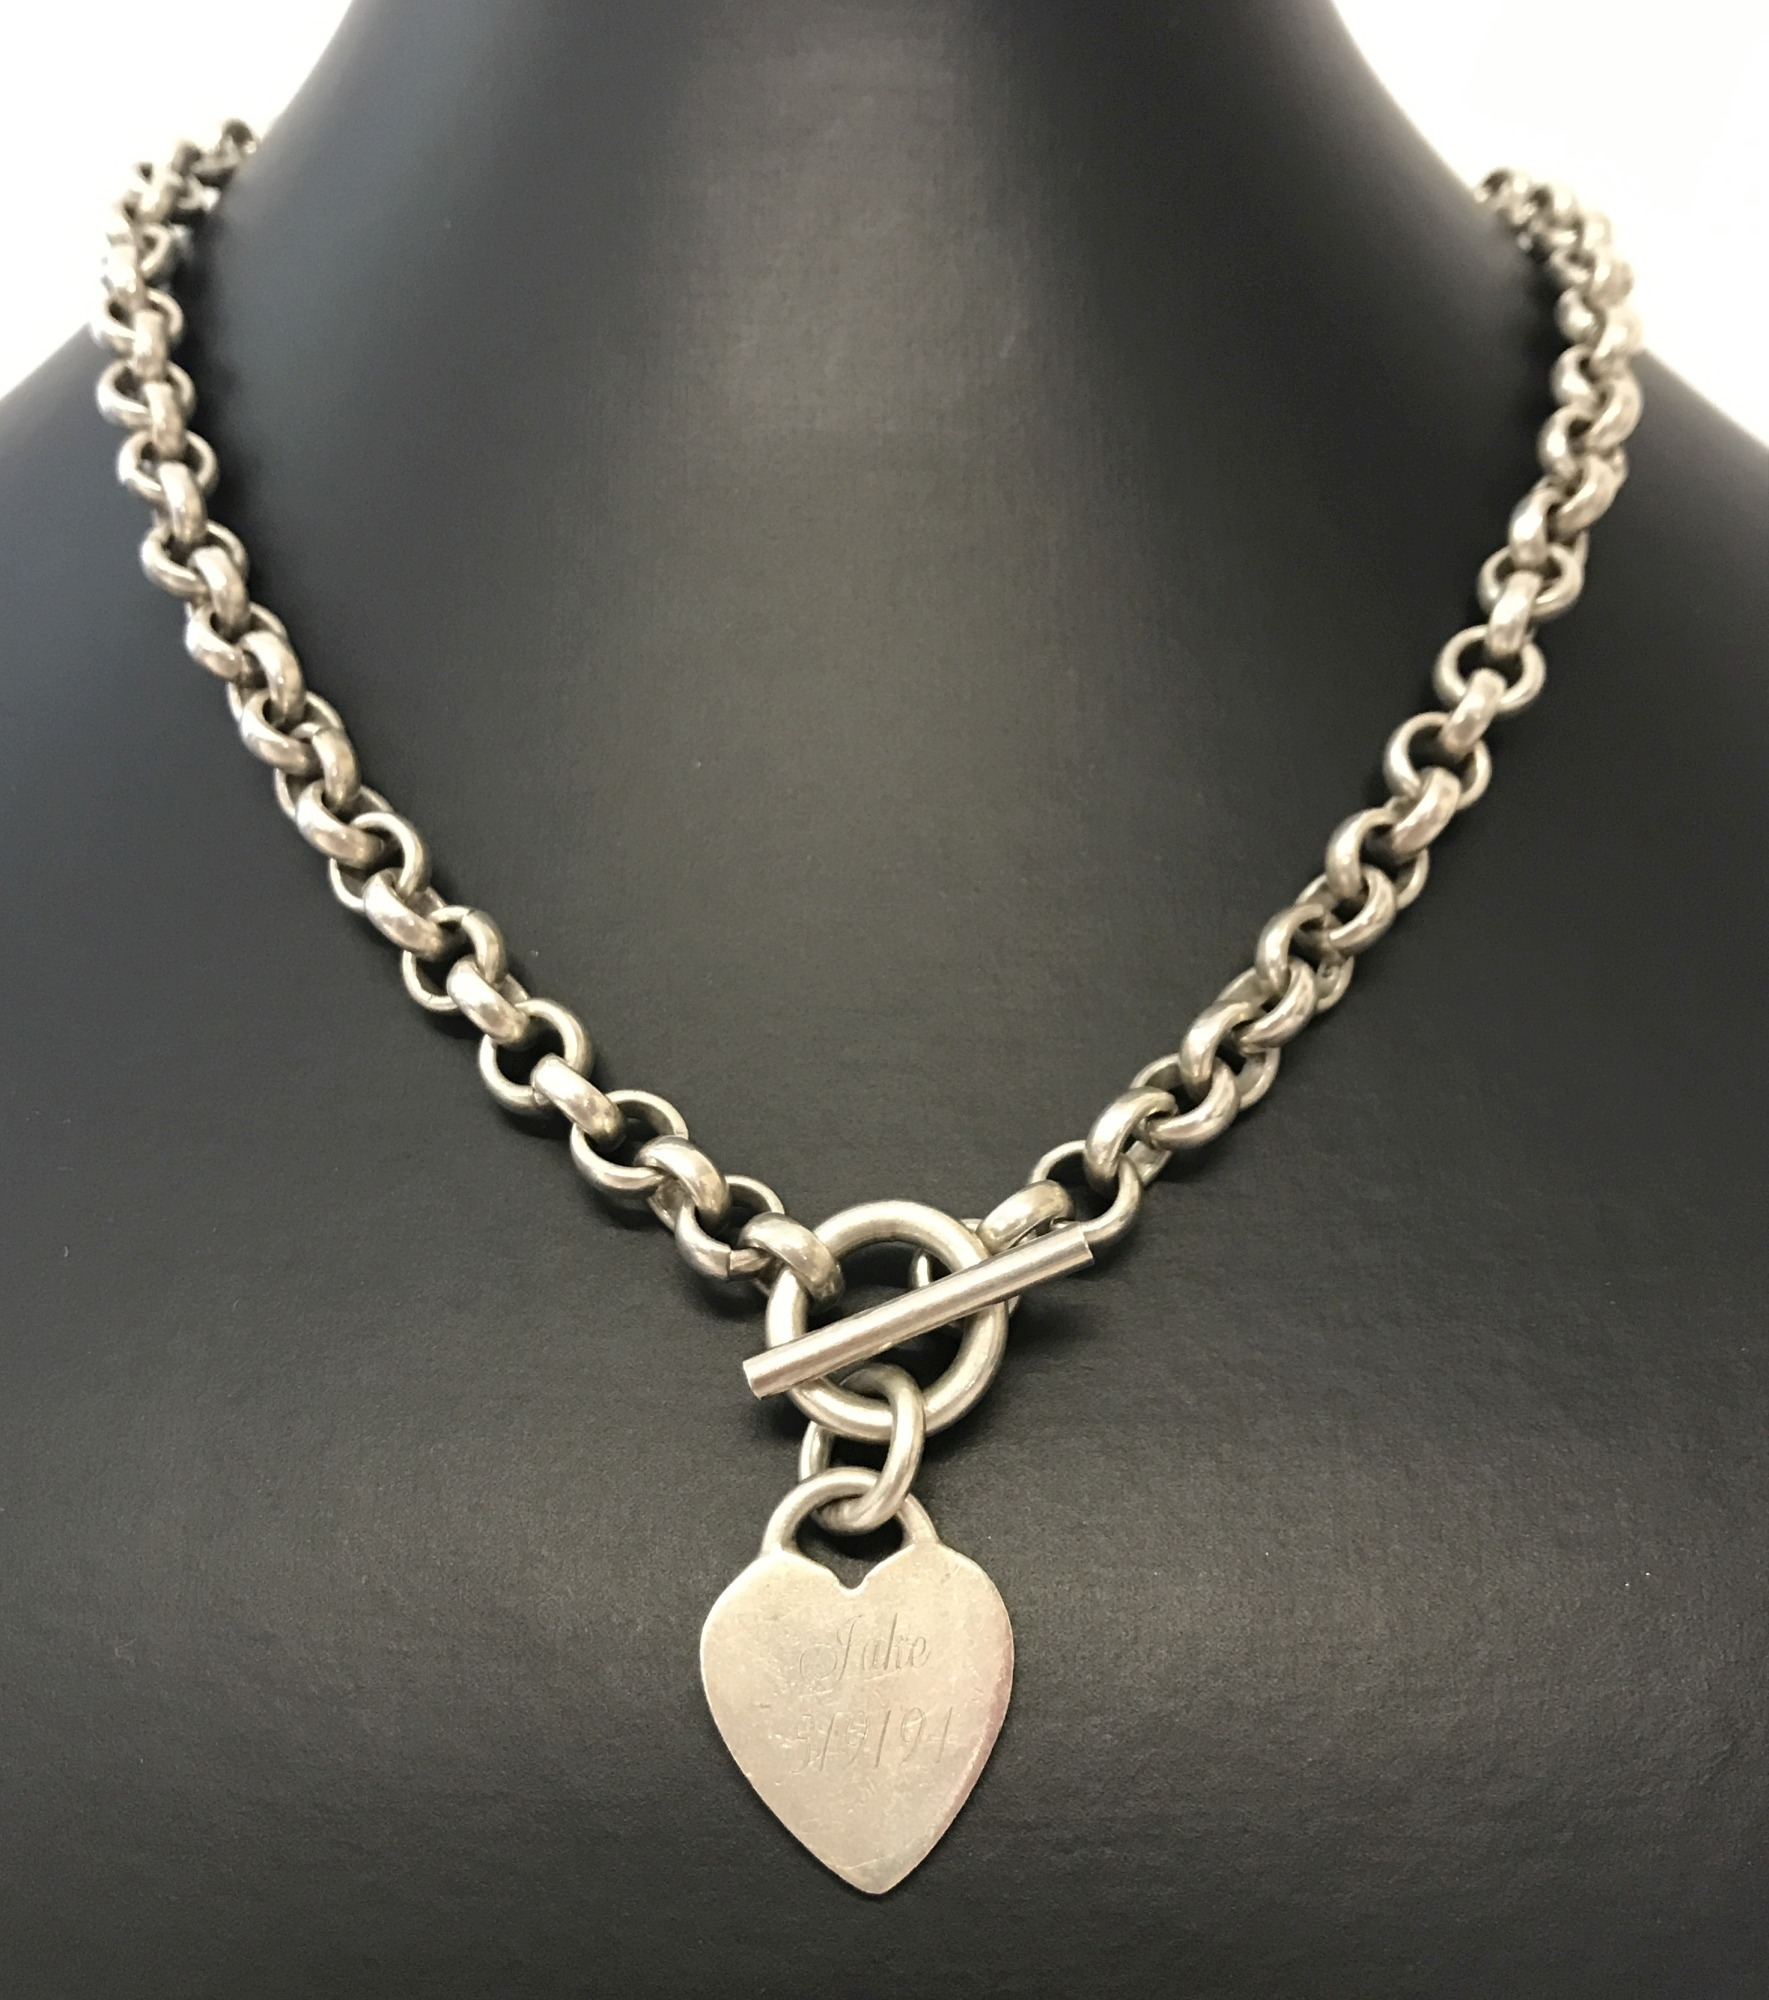 Lot 13 - A heavy belcher chain with front T bar fixing and dangle heart pendant.